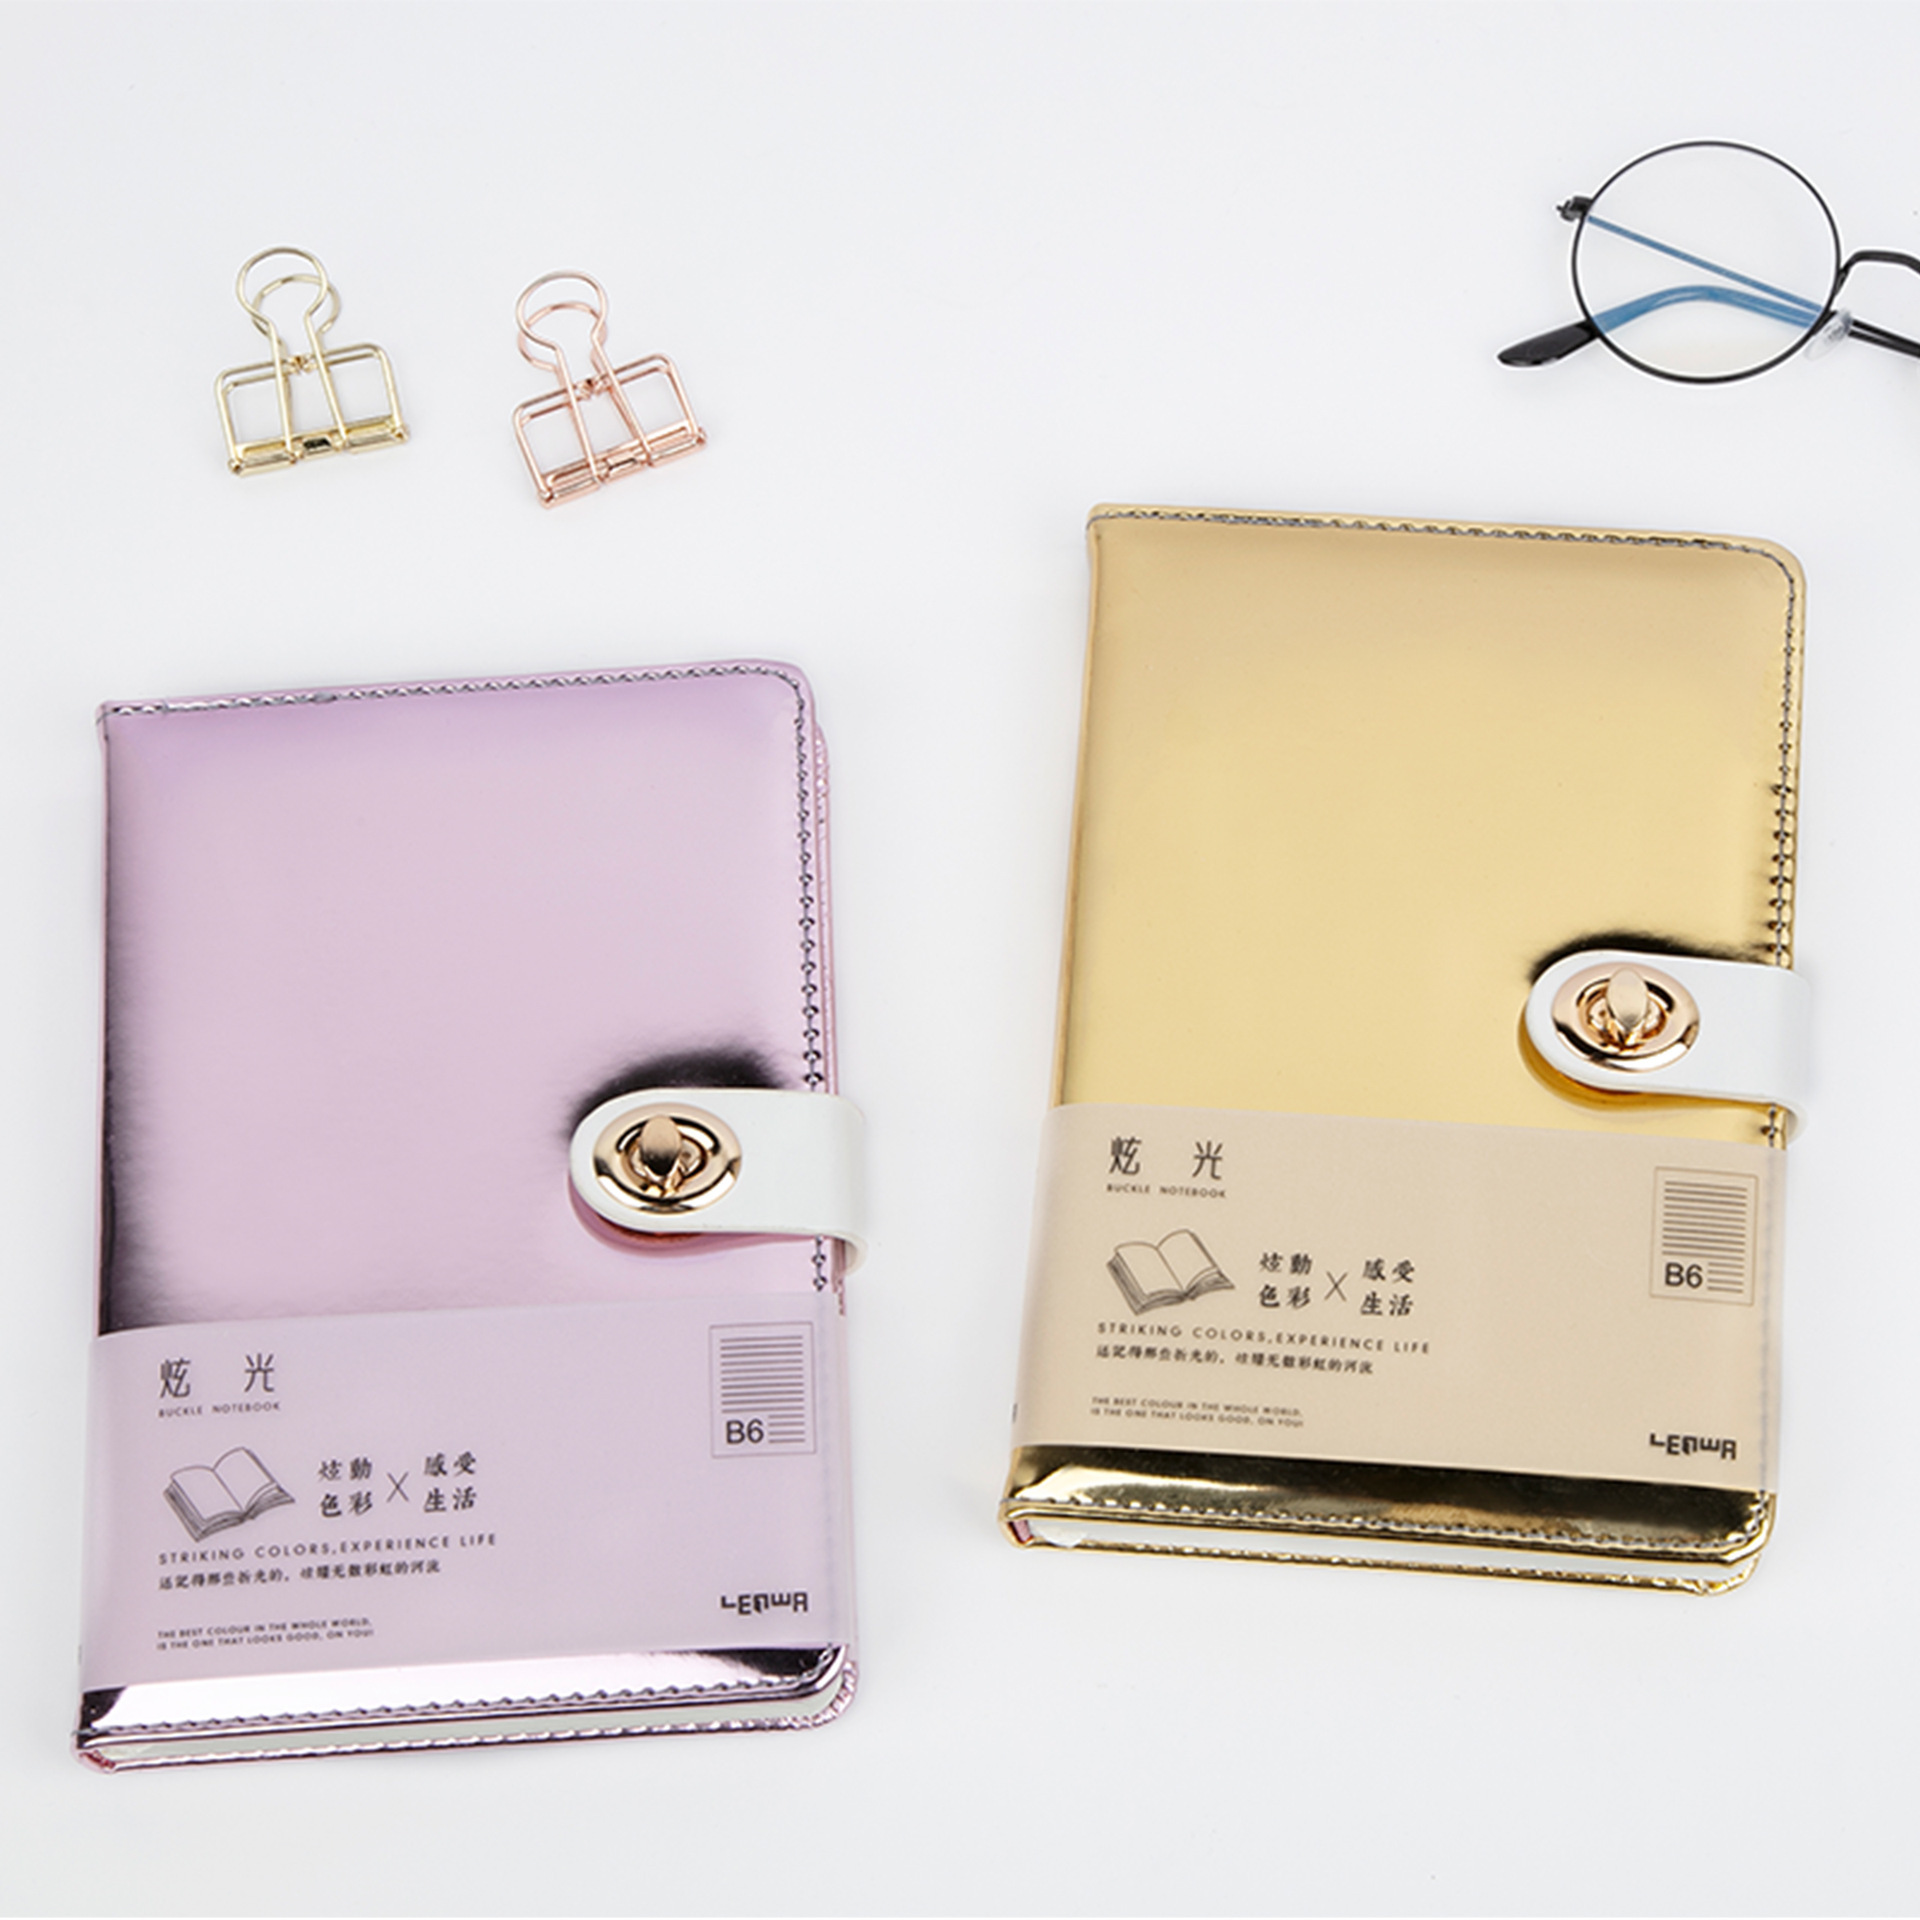 2020 New Creative Office School Laser Hardcover Leather Notebooks Student Subject Composition Copy Note Book With Rules A6